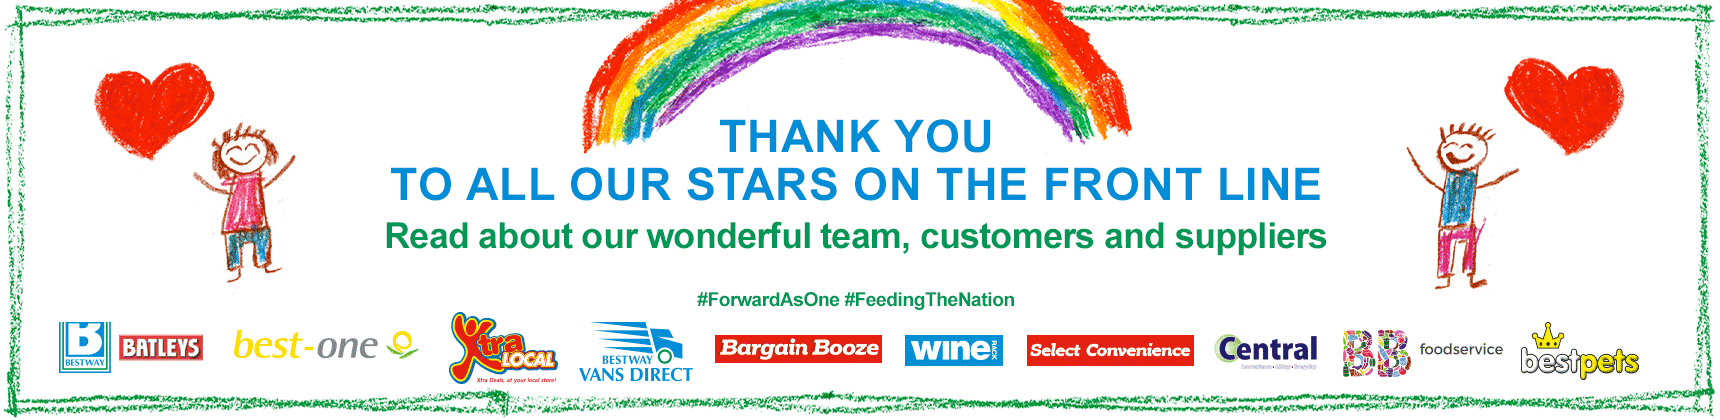 Thank you to all our stars on the front line. Read about our wonderful team, customers and suppliers